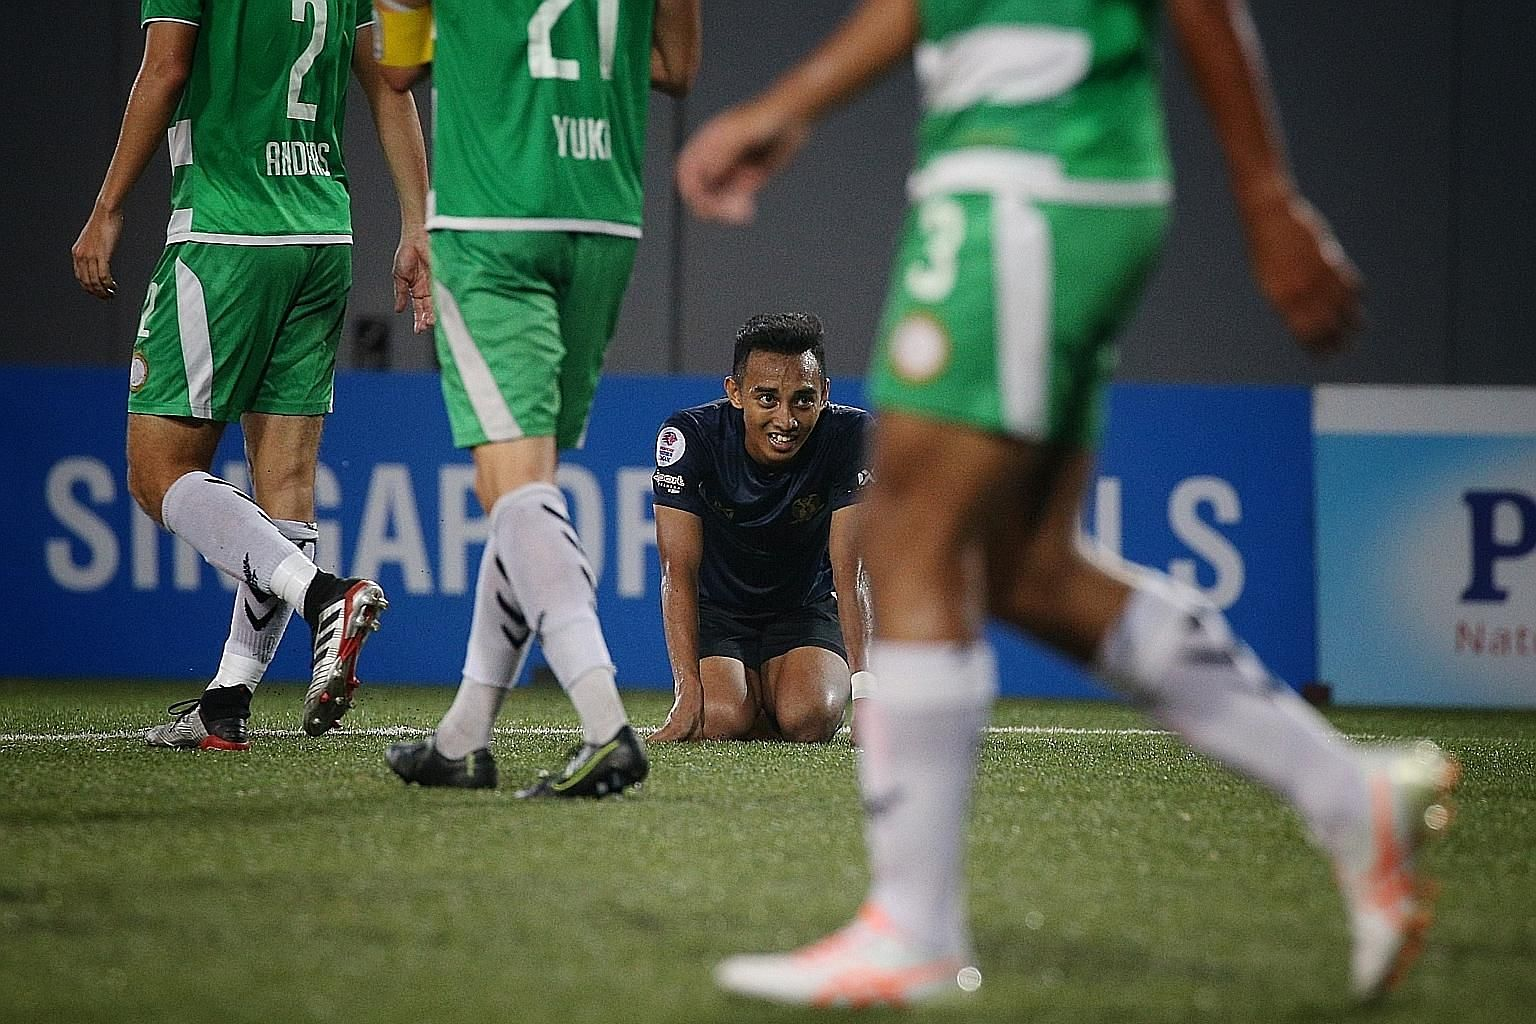 Hougang United's Faris Ramli showing his disappointment at a missed opportunity during his team's Singapore Premier League match against Geylang International at Our Tampines Hub yesterday. The game ended in a 4-4 draw.